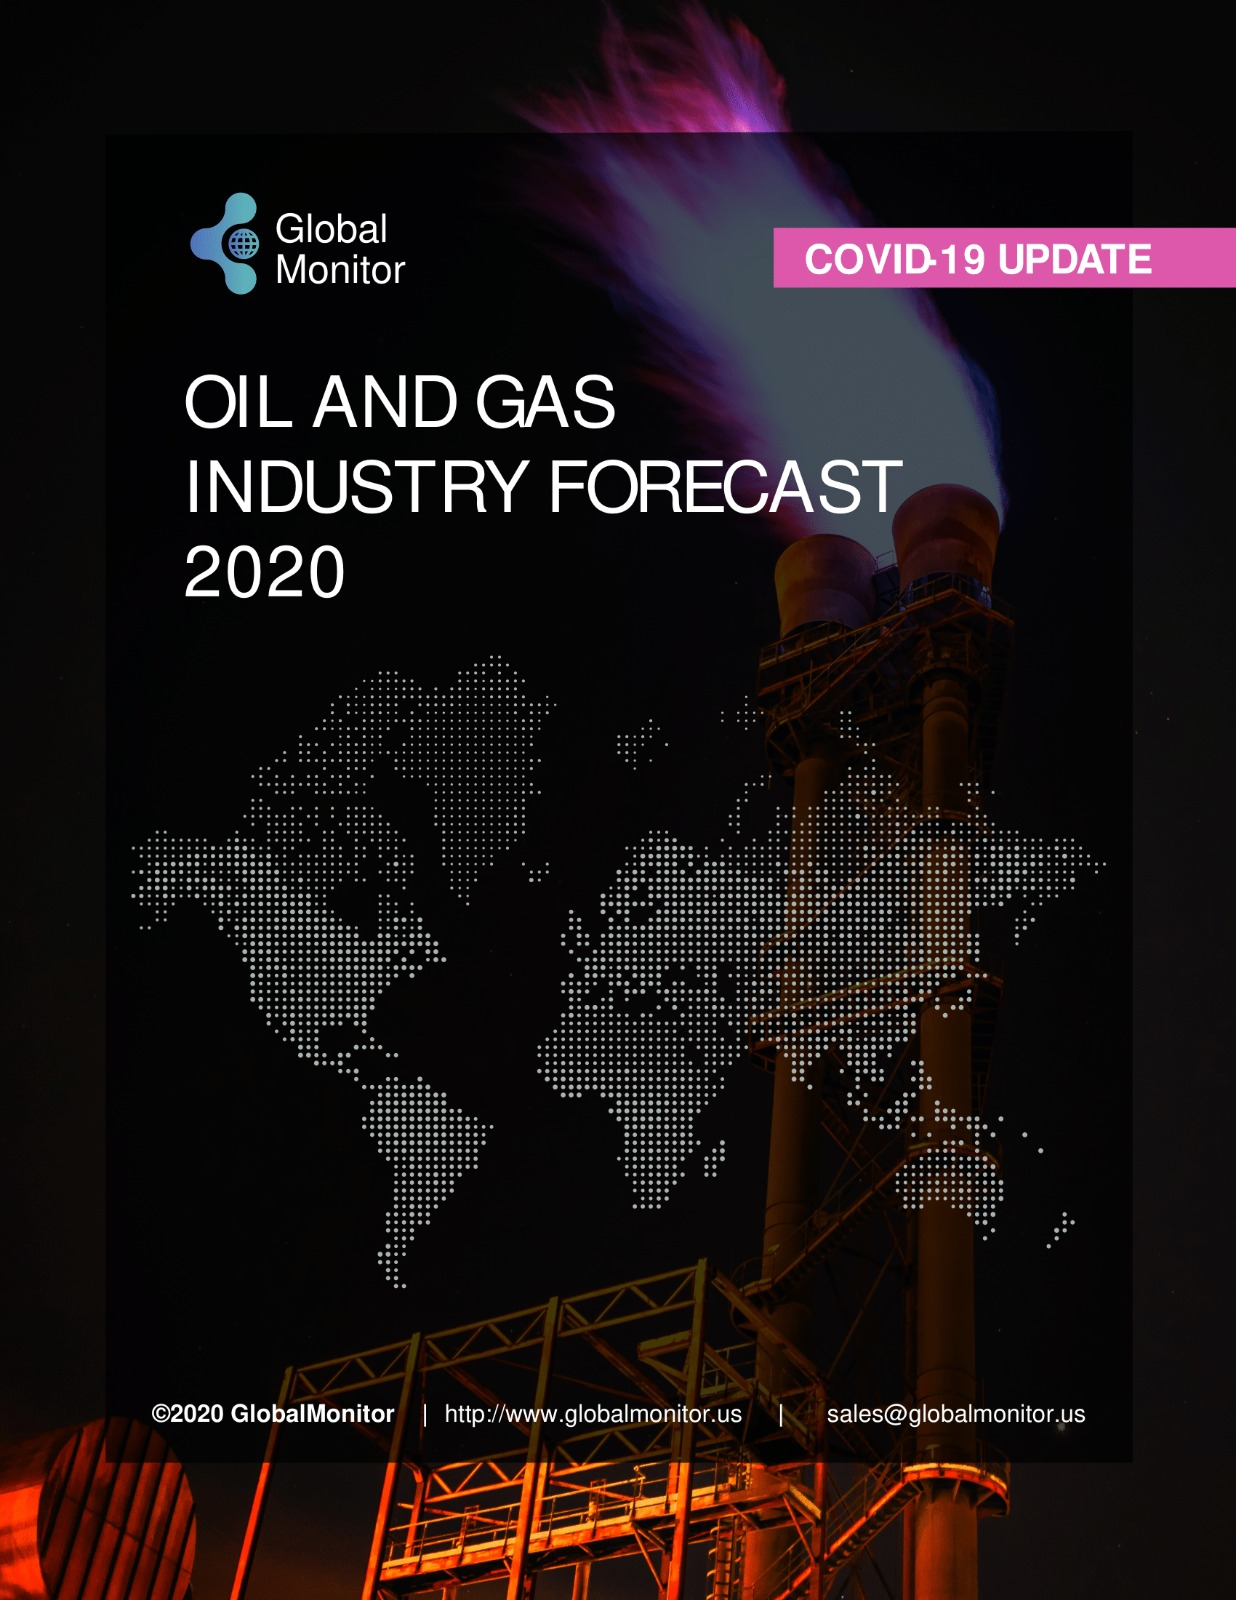 Japan Oil and Gas Market Report with COVID-19 impact Analysis (2020-2025)